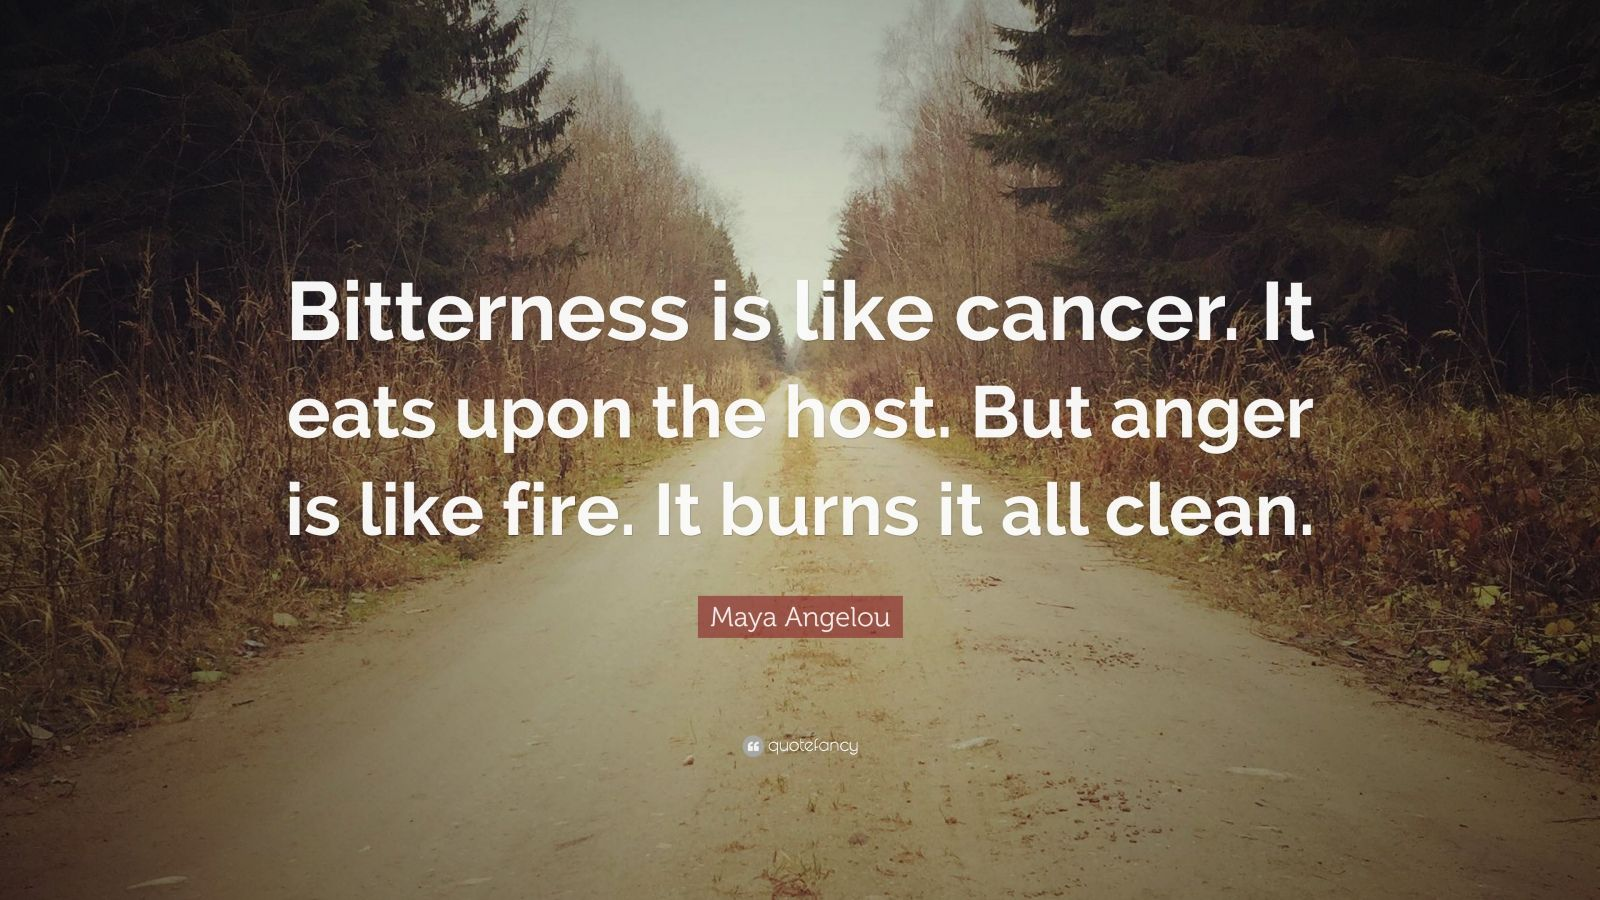 """Maya Angelou Quote: """"Bitterness is like cancer. It eats upon the host. But anger is like fire. It burns it all clean."""""""